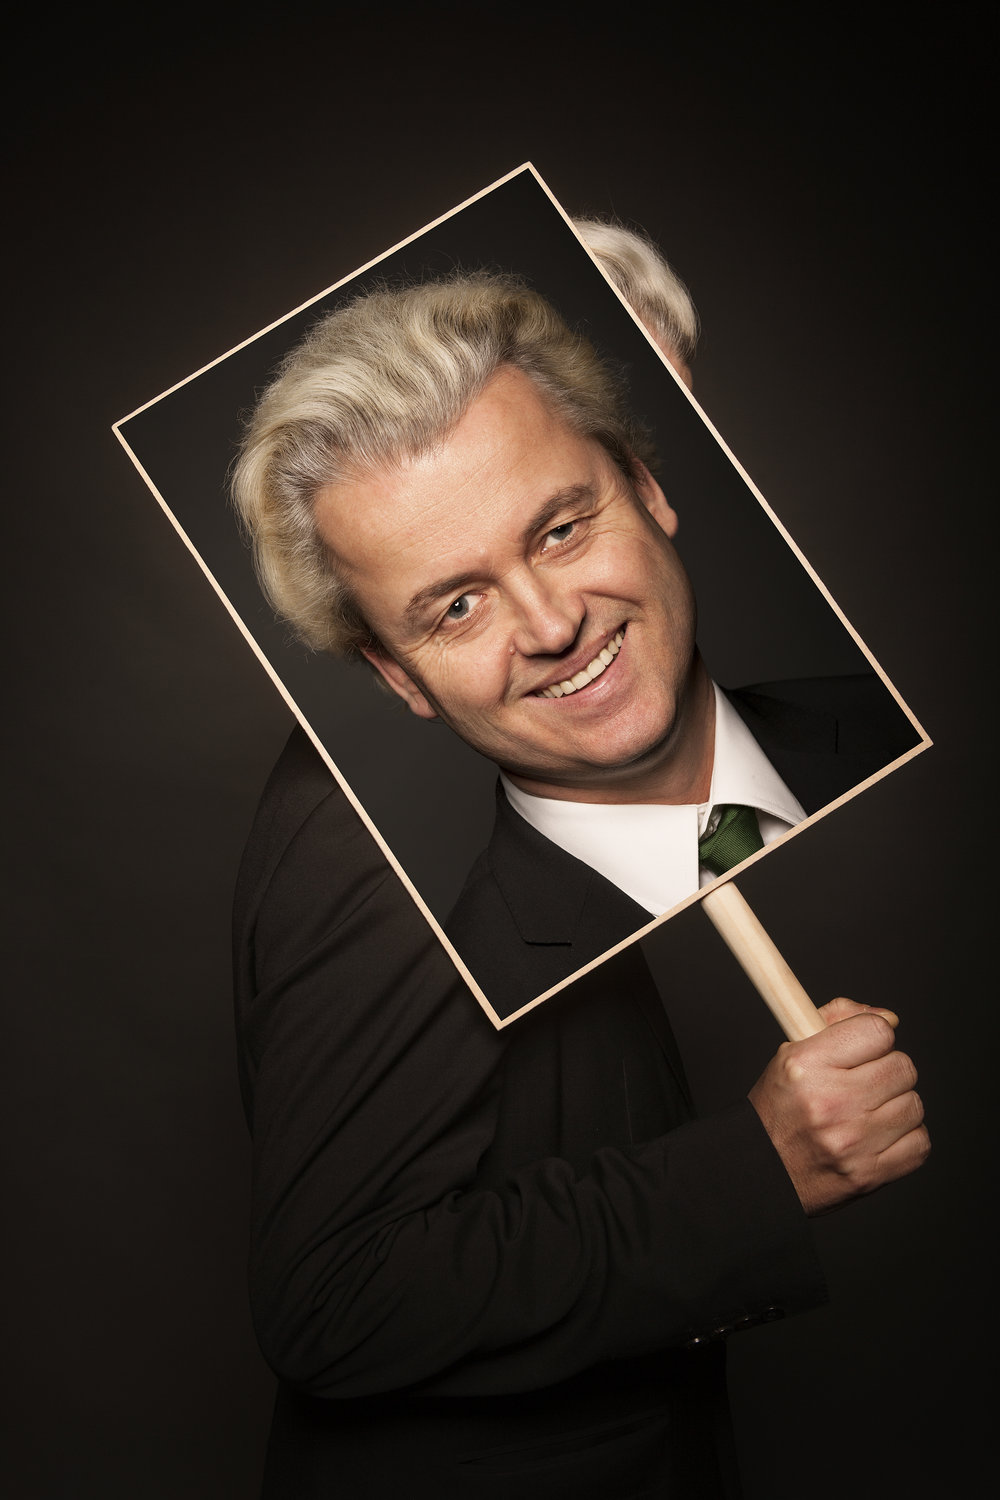 Geert Wilders, Politician